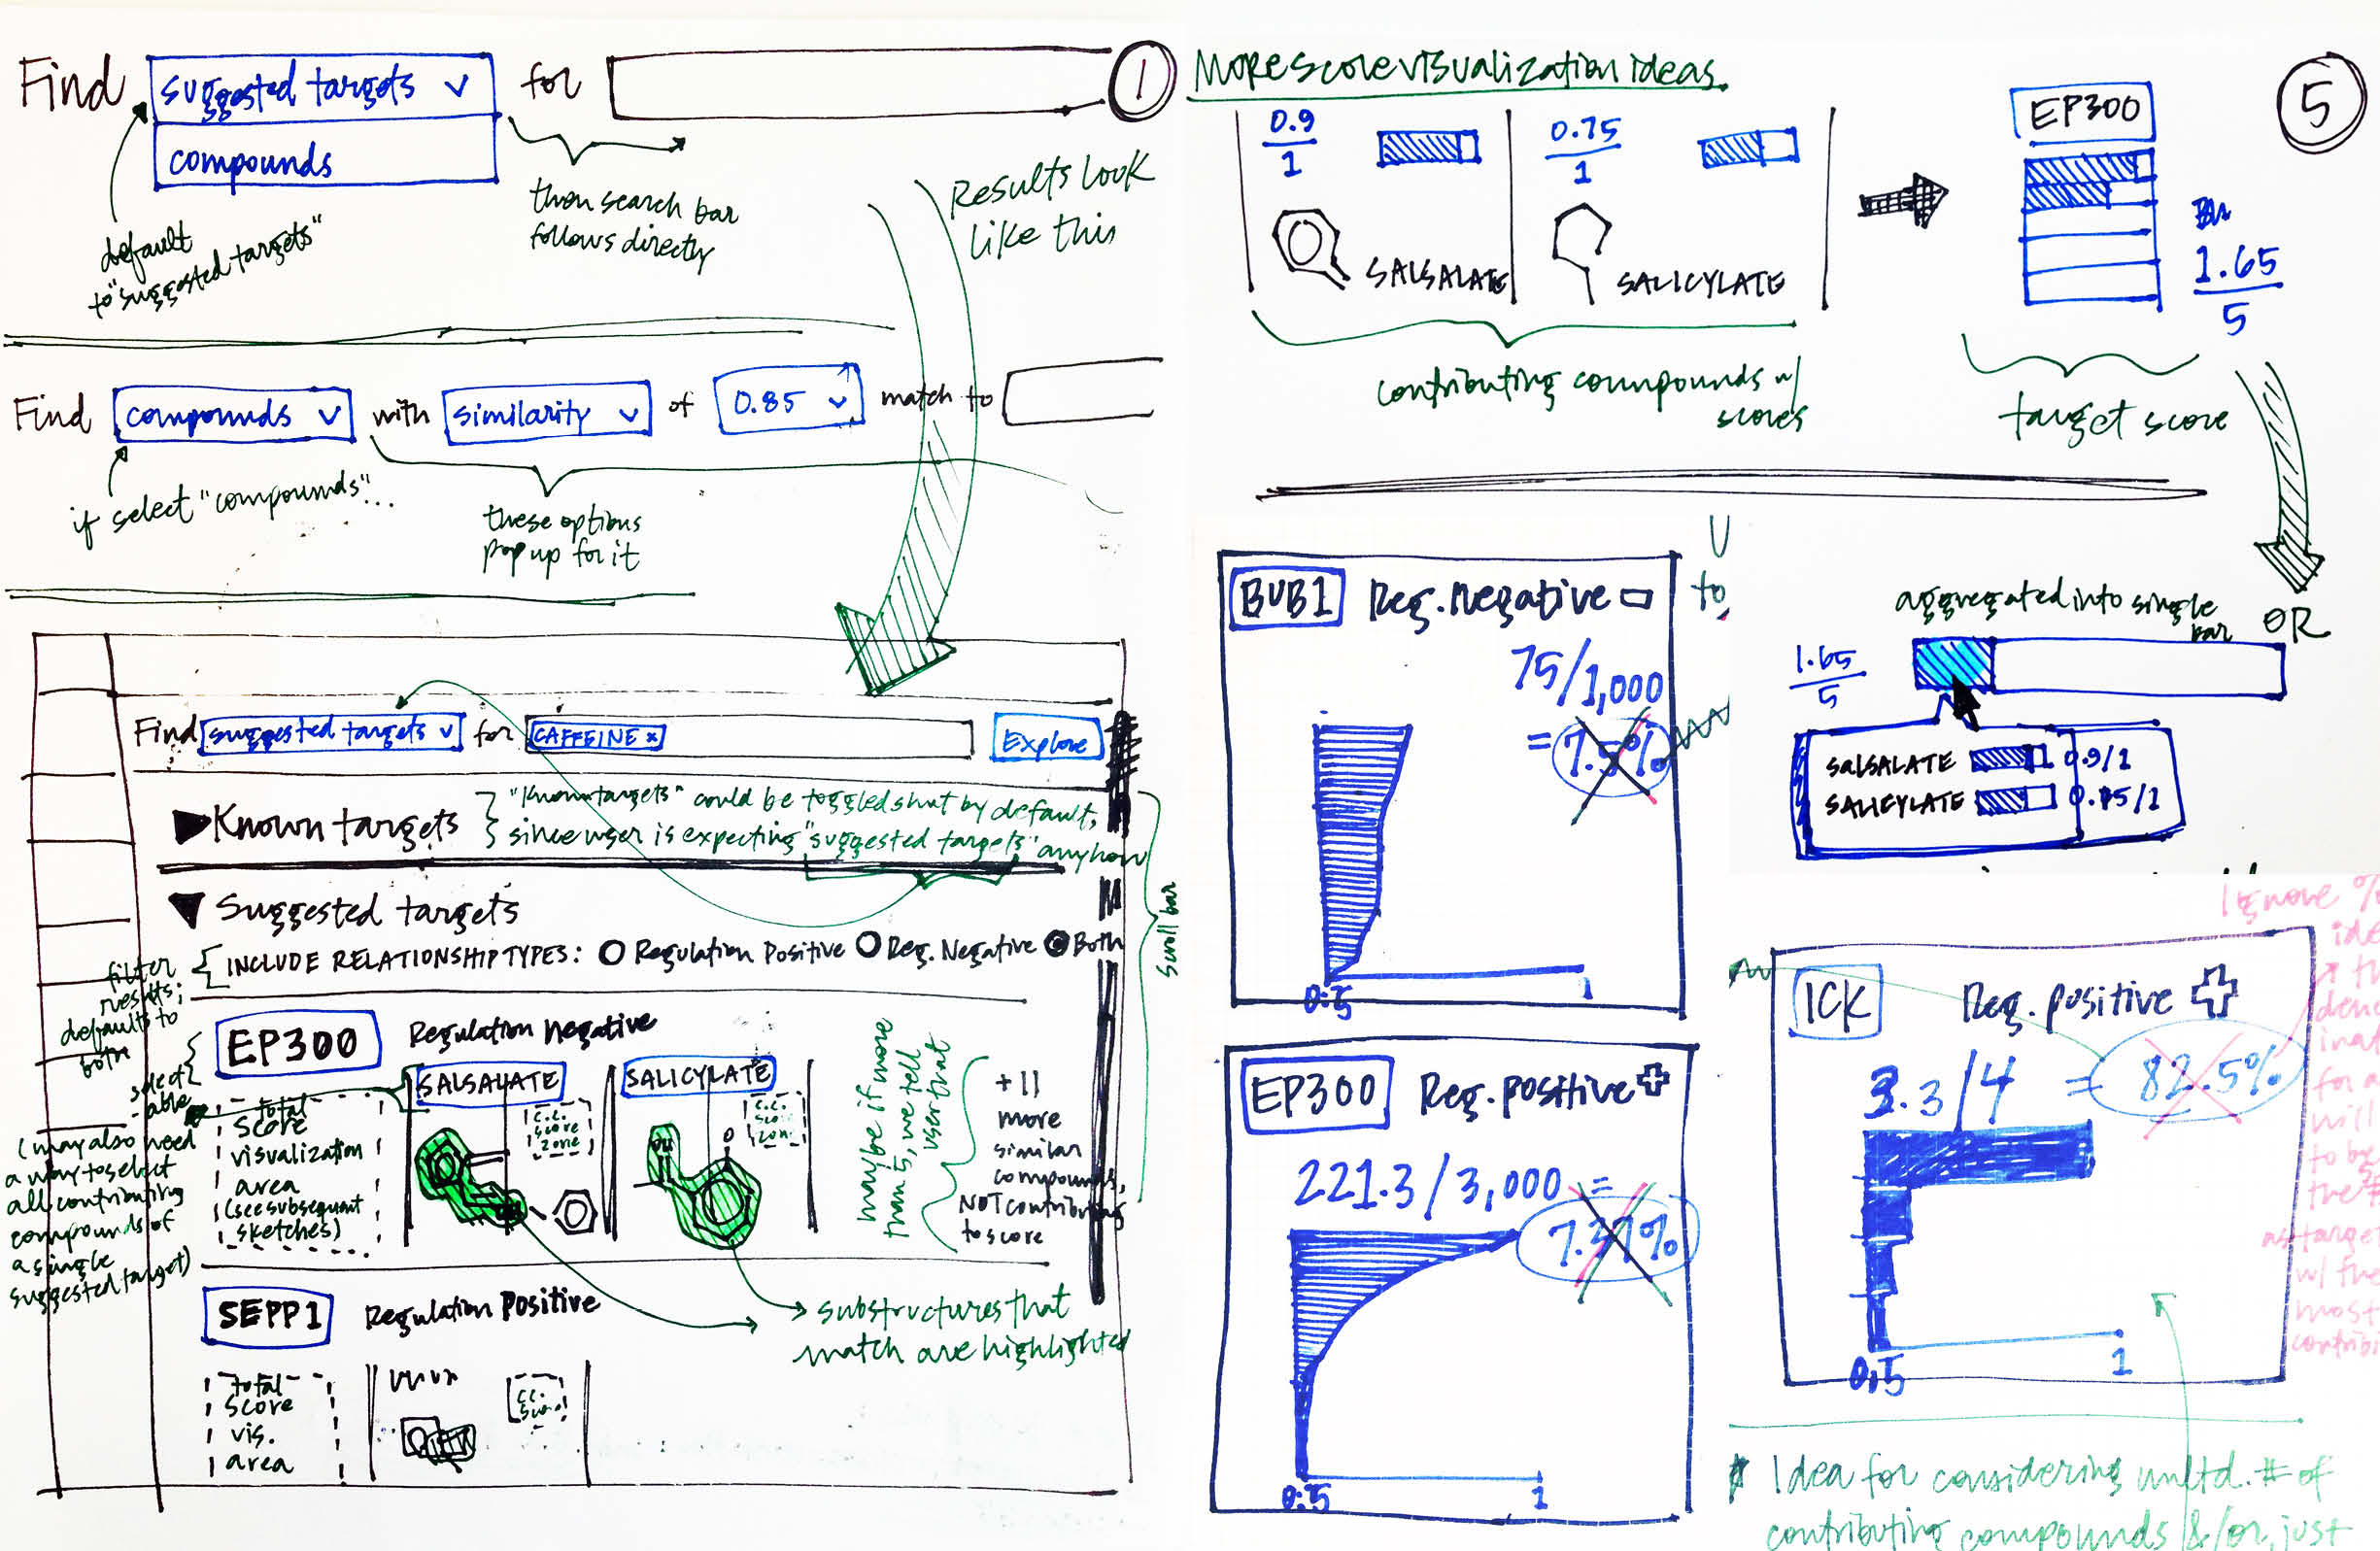 More proportionality and UI sketches.